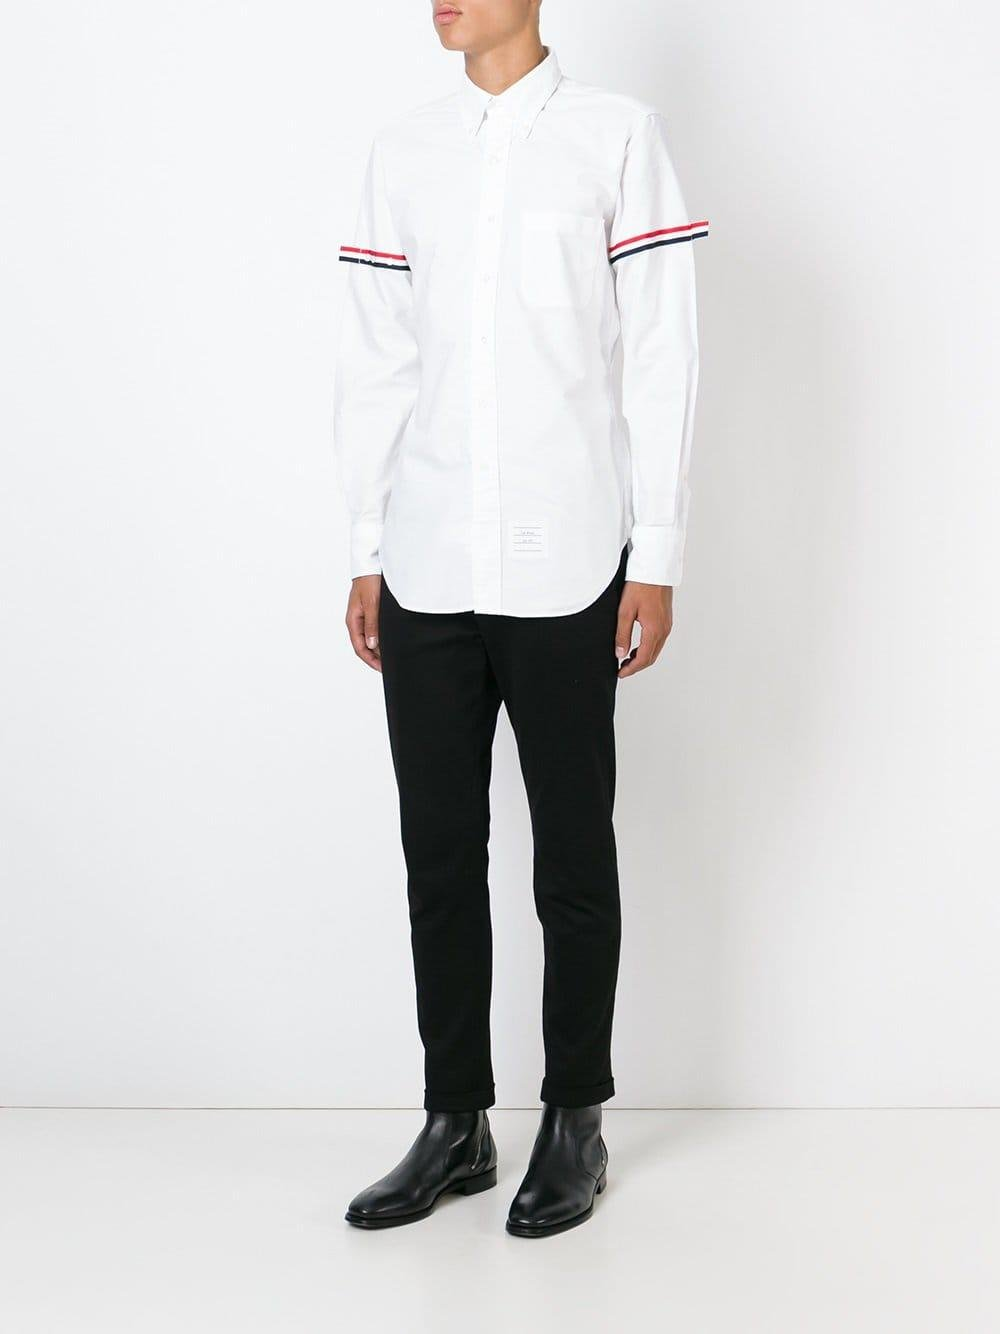 e1767b6fc2e1 Lyst - Thom Browne Striped Sleeve Shirt in White for Men - Save 40%